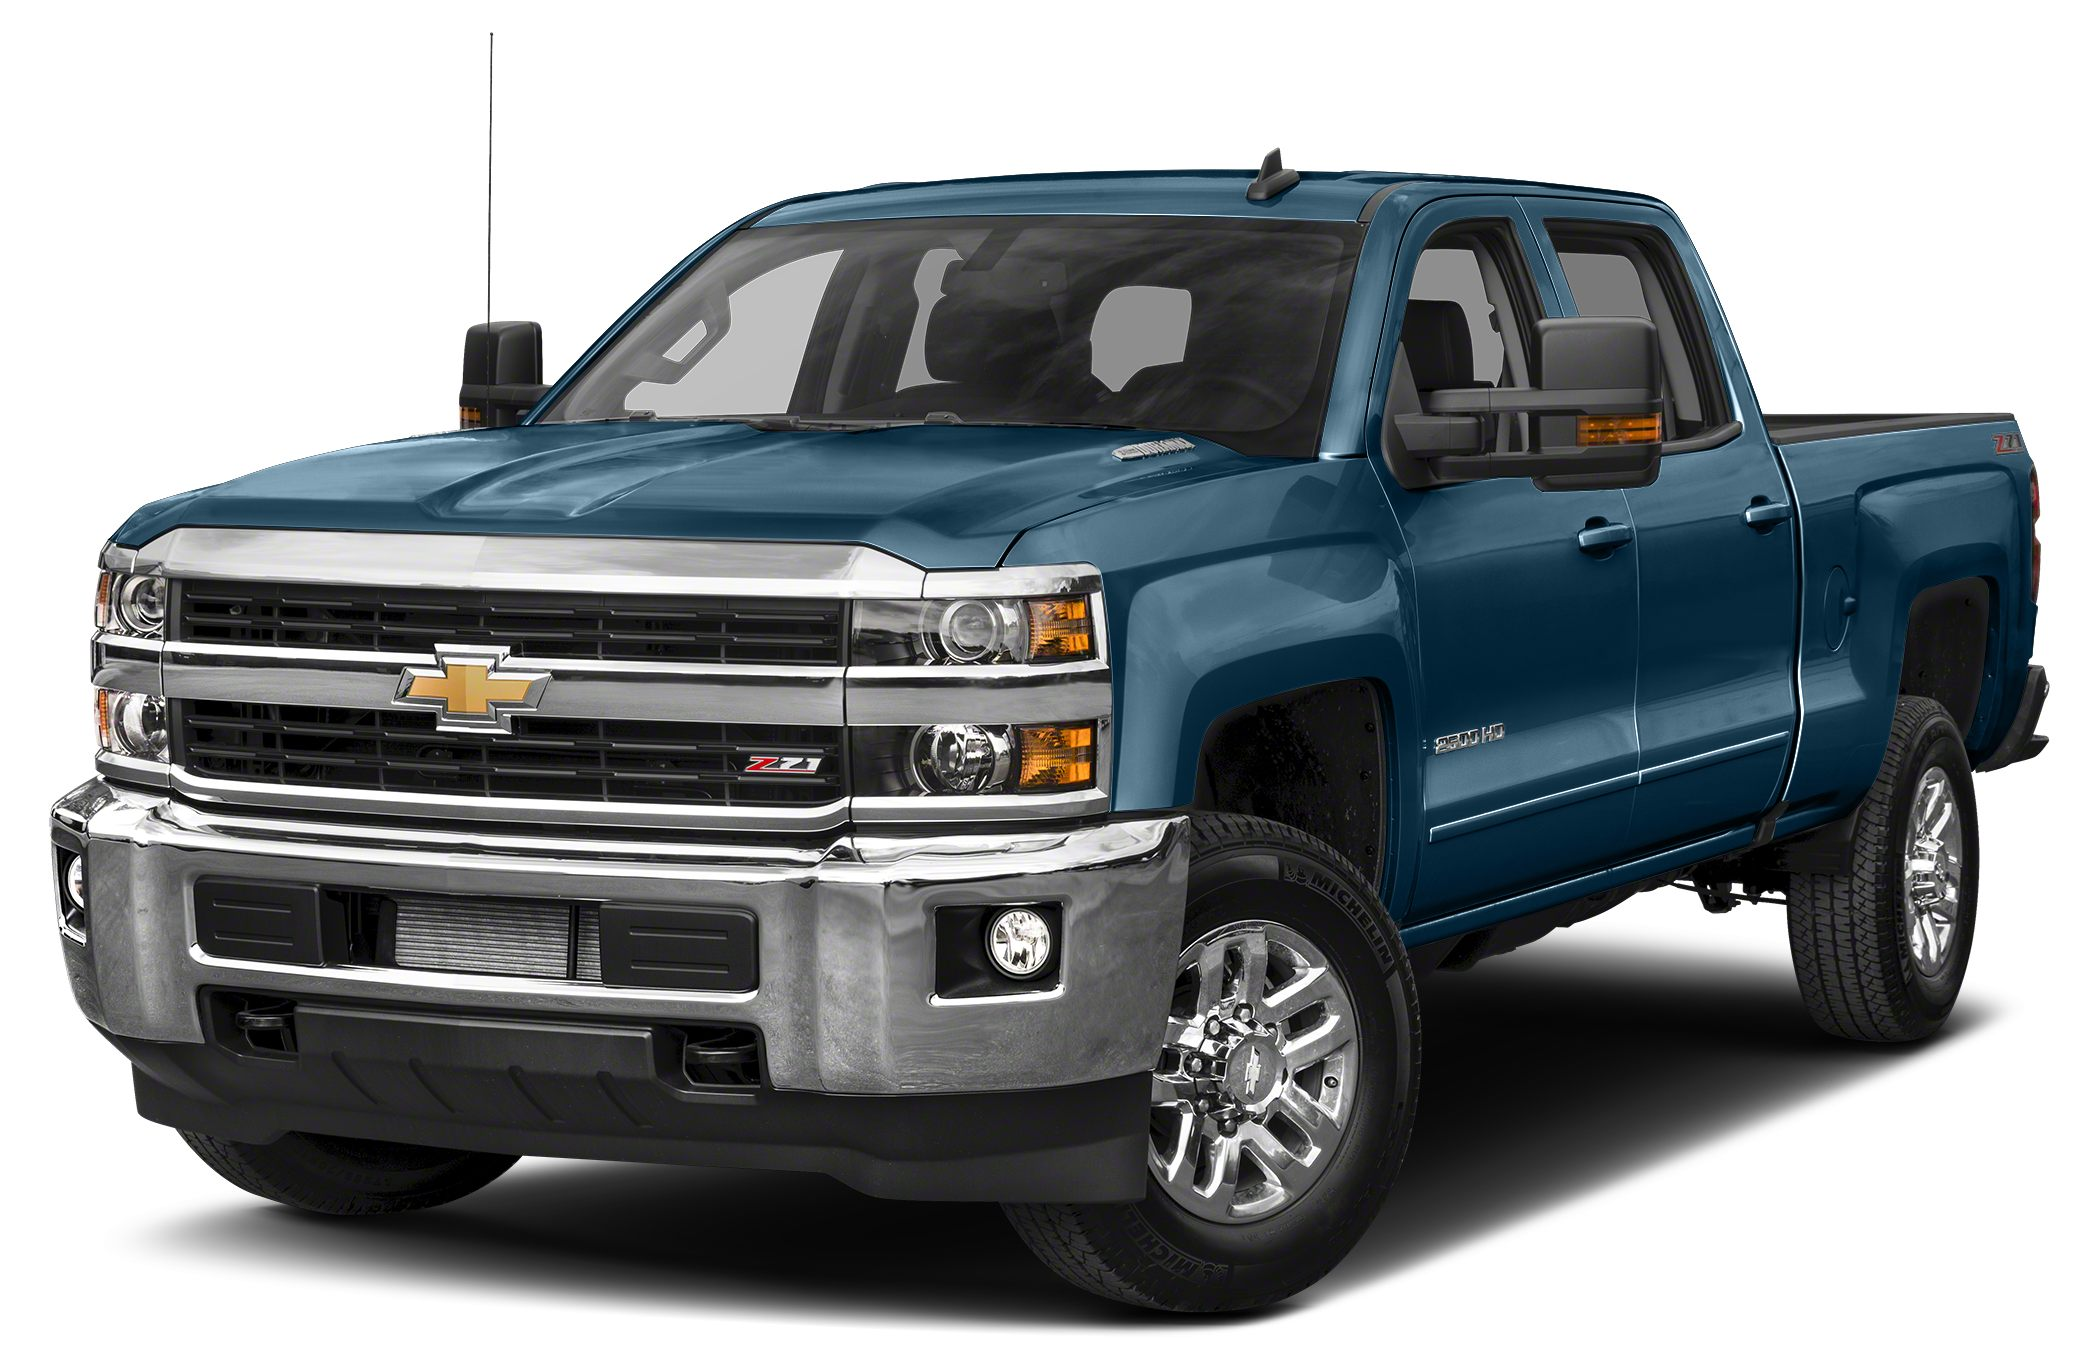 2017 Chevrolet Silverado 2500HD LT They say All roads lead to Rome but who cares which one you ta